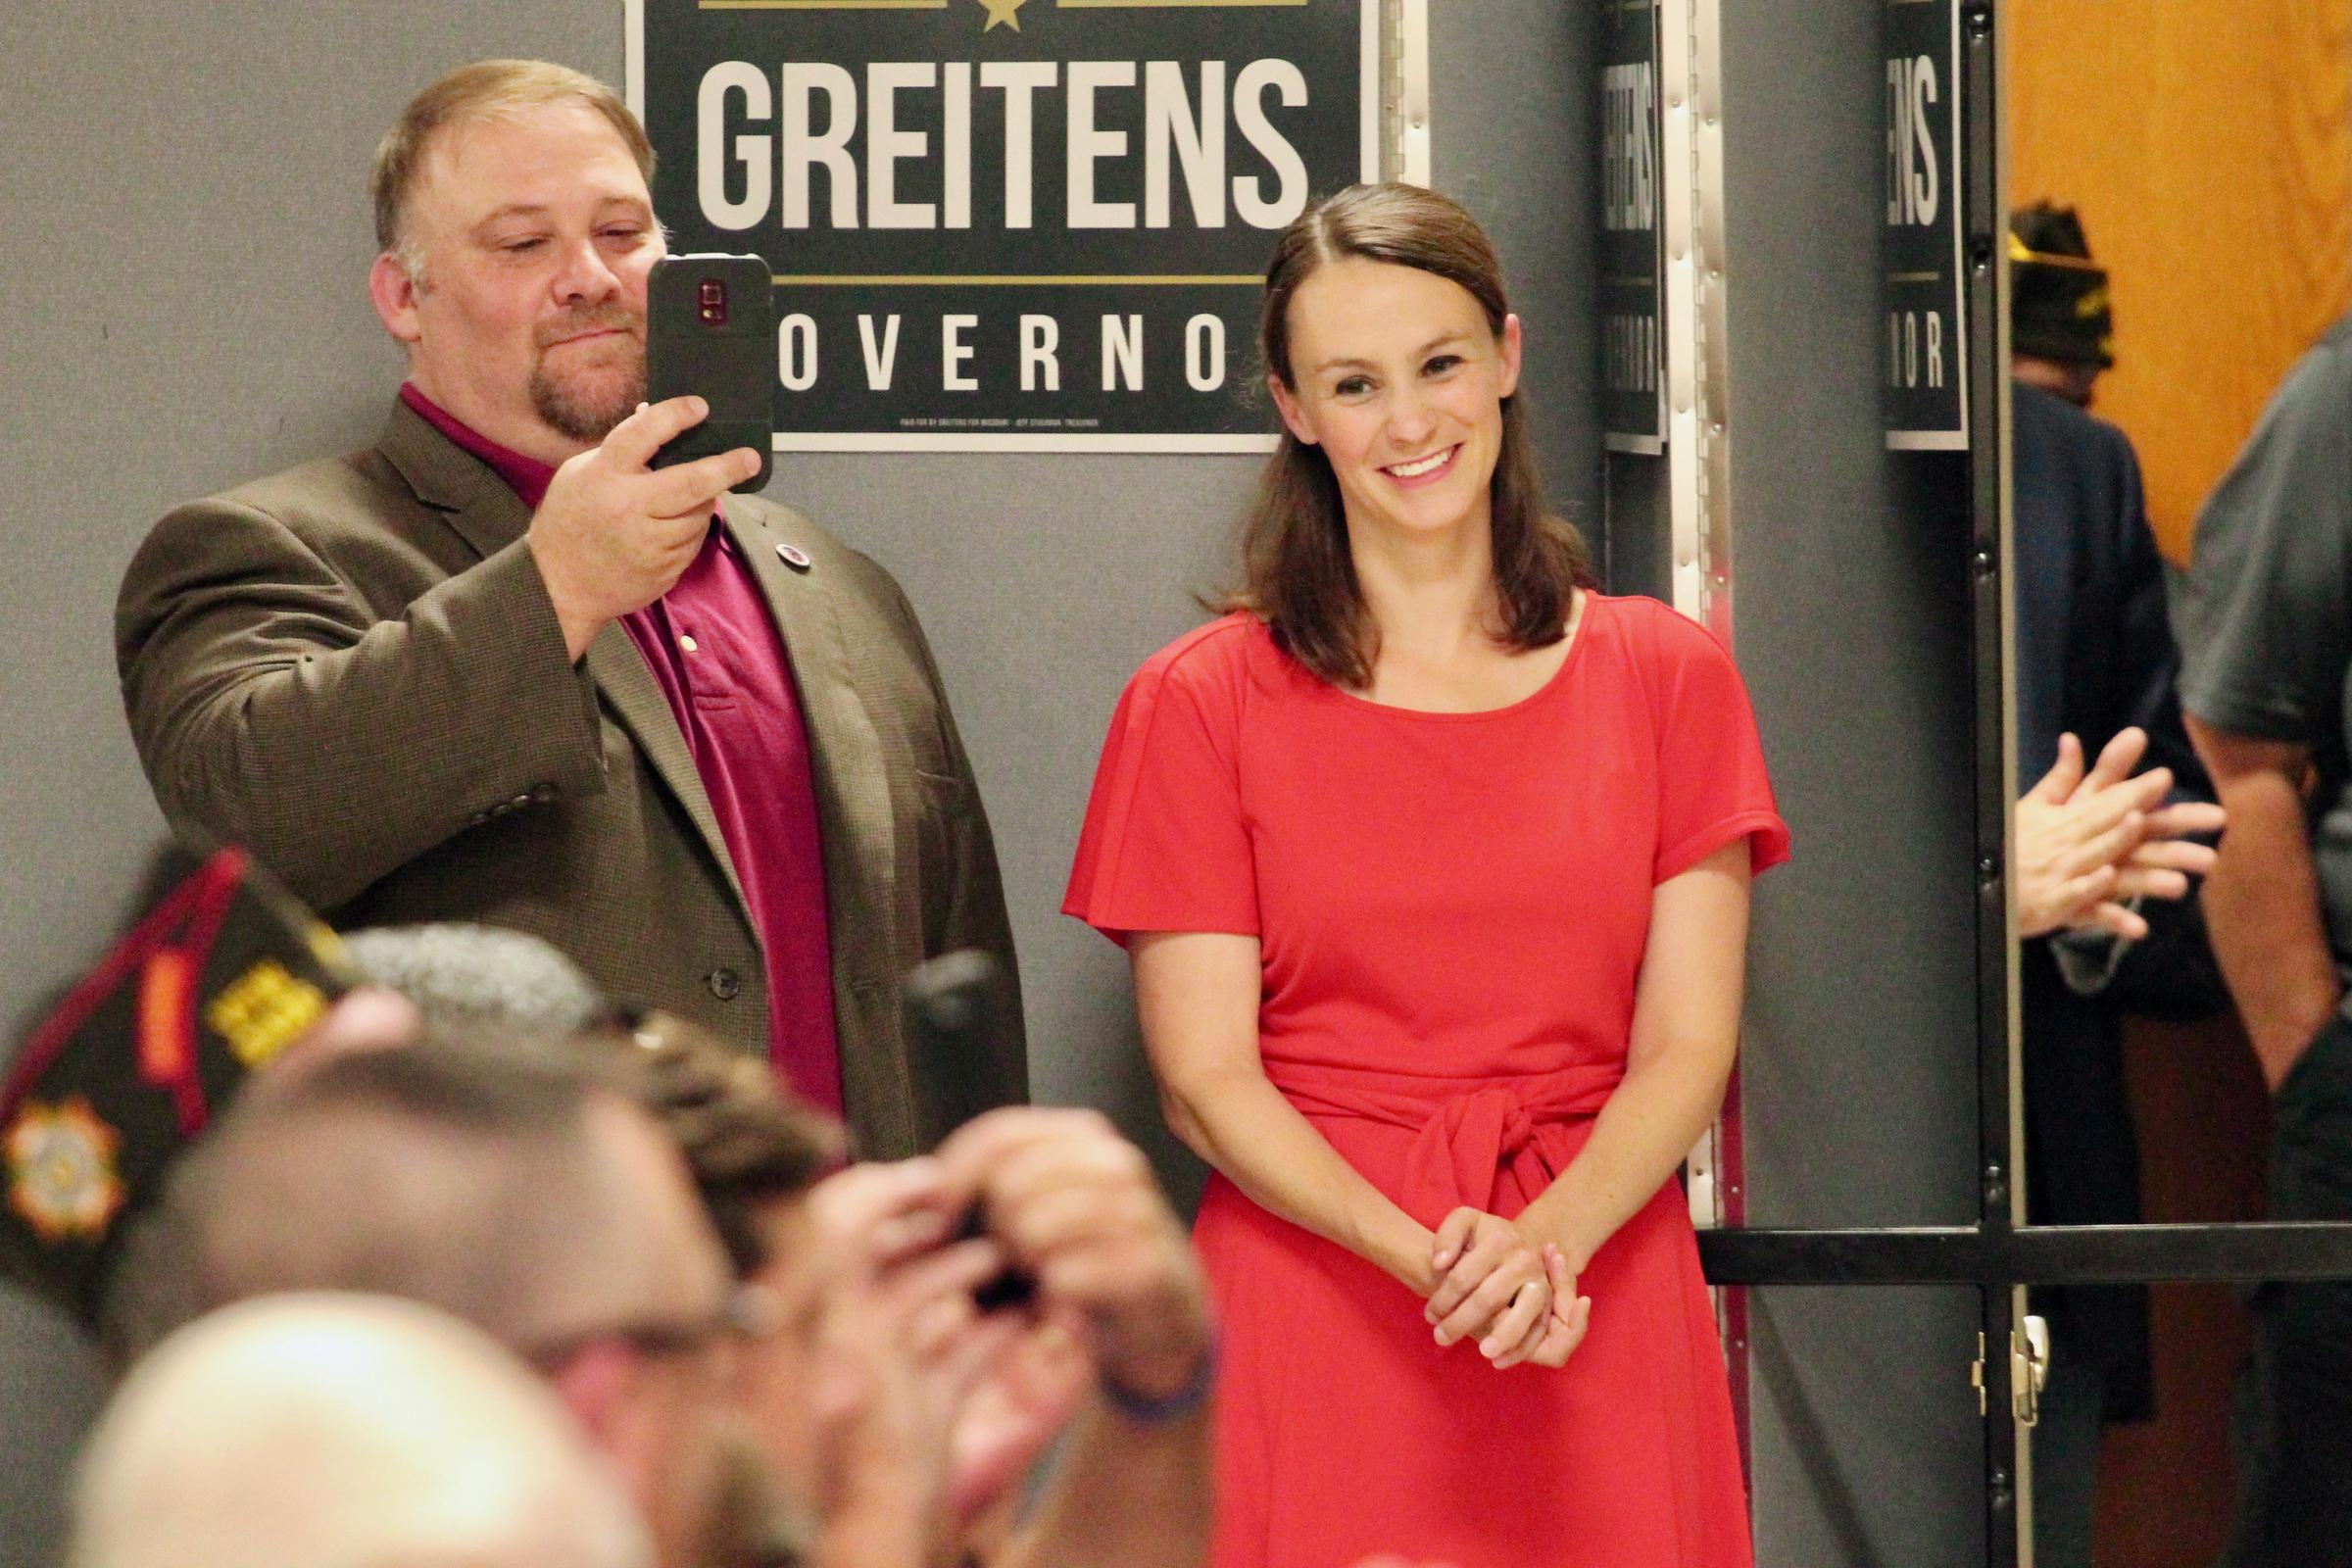 Man on a Mission: Greitens embarks on quest to become Missouri's